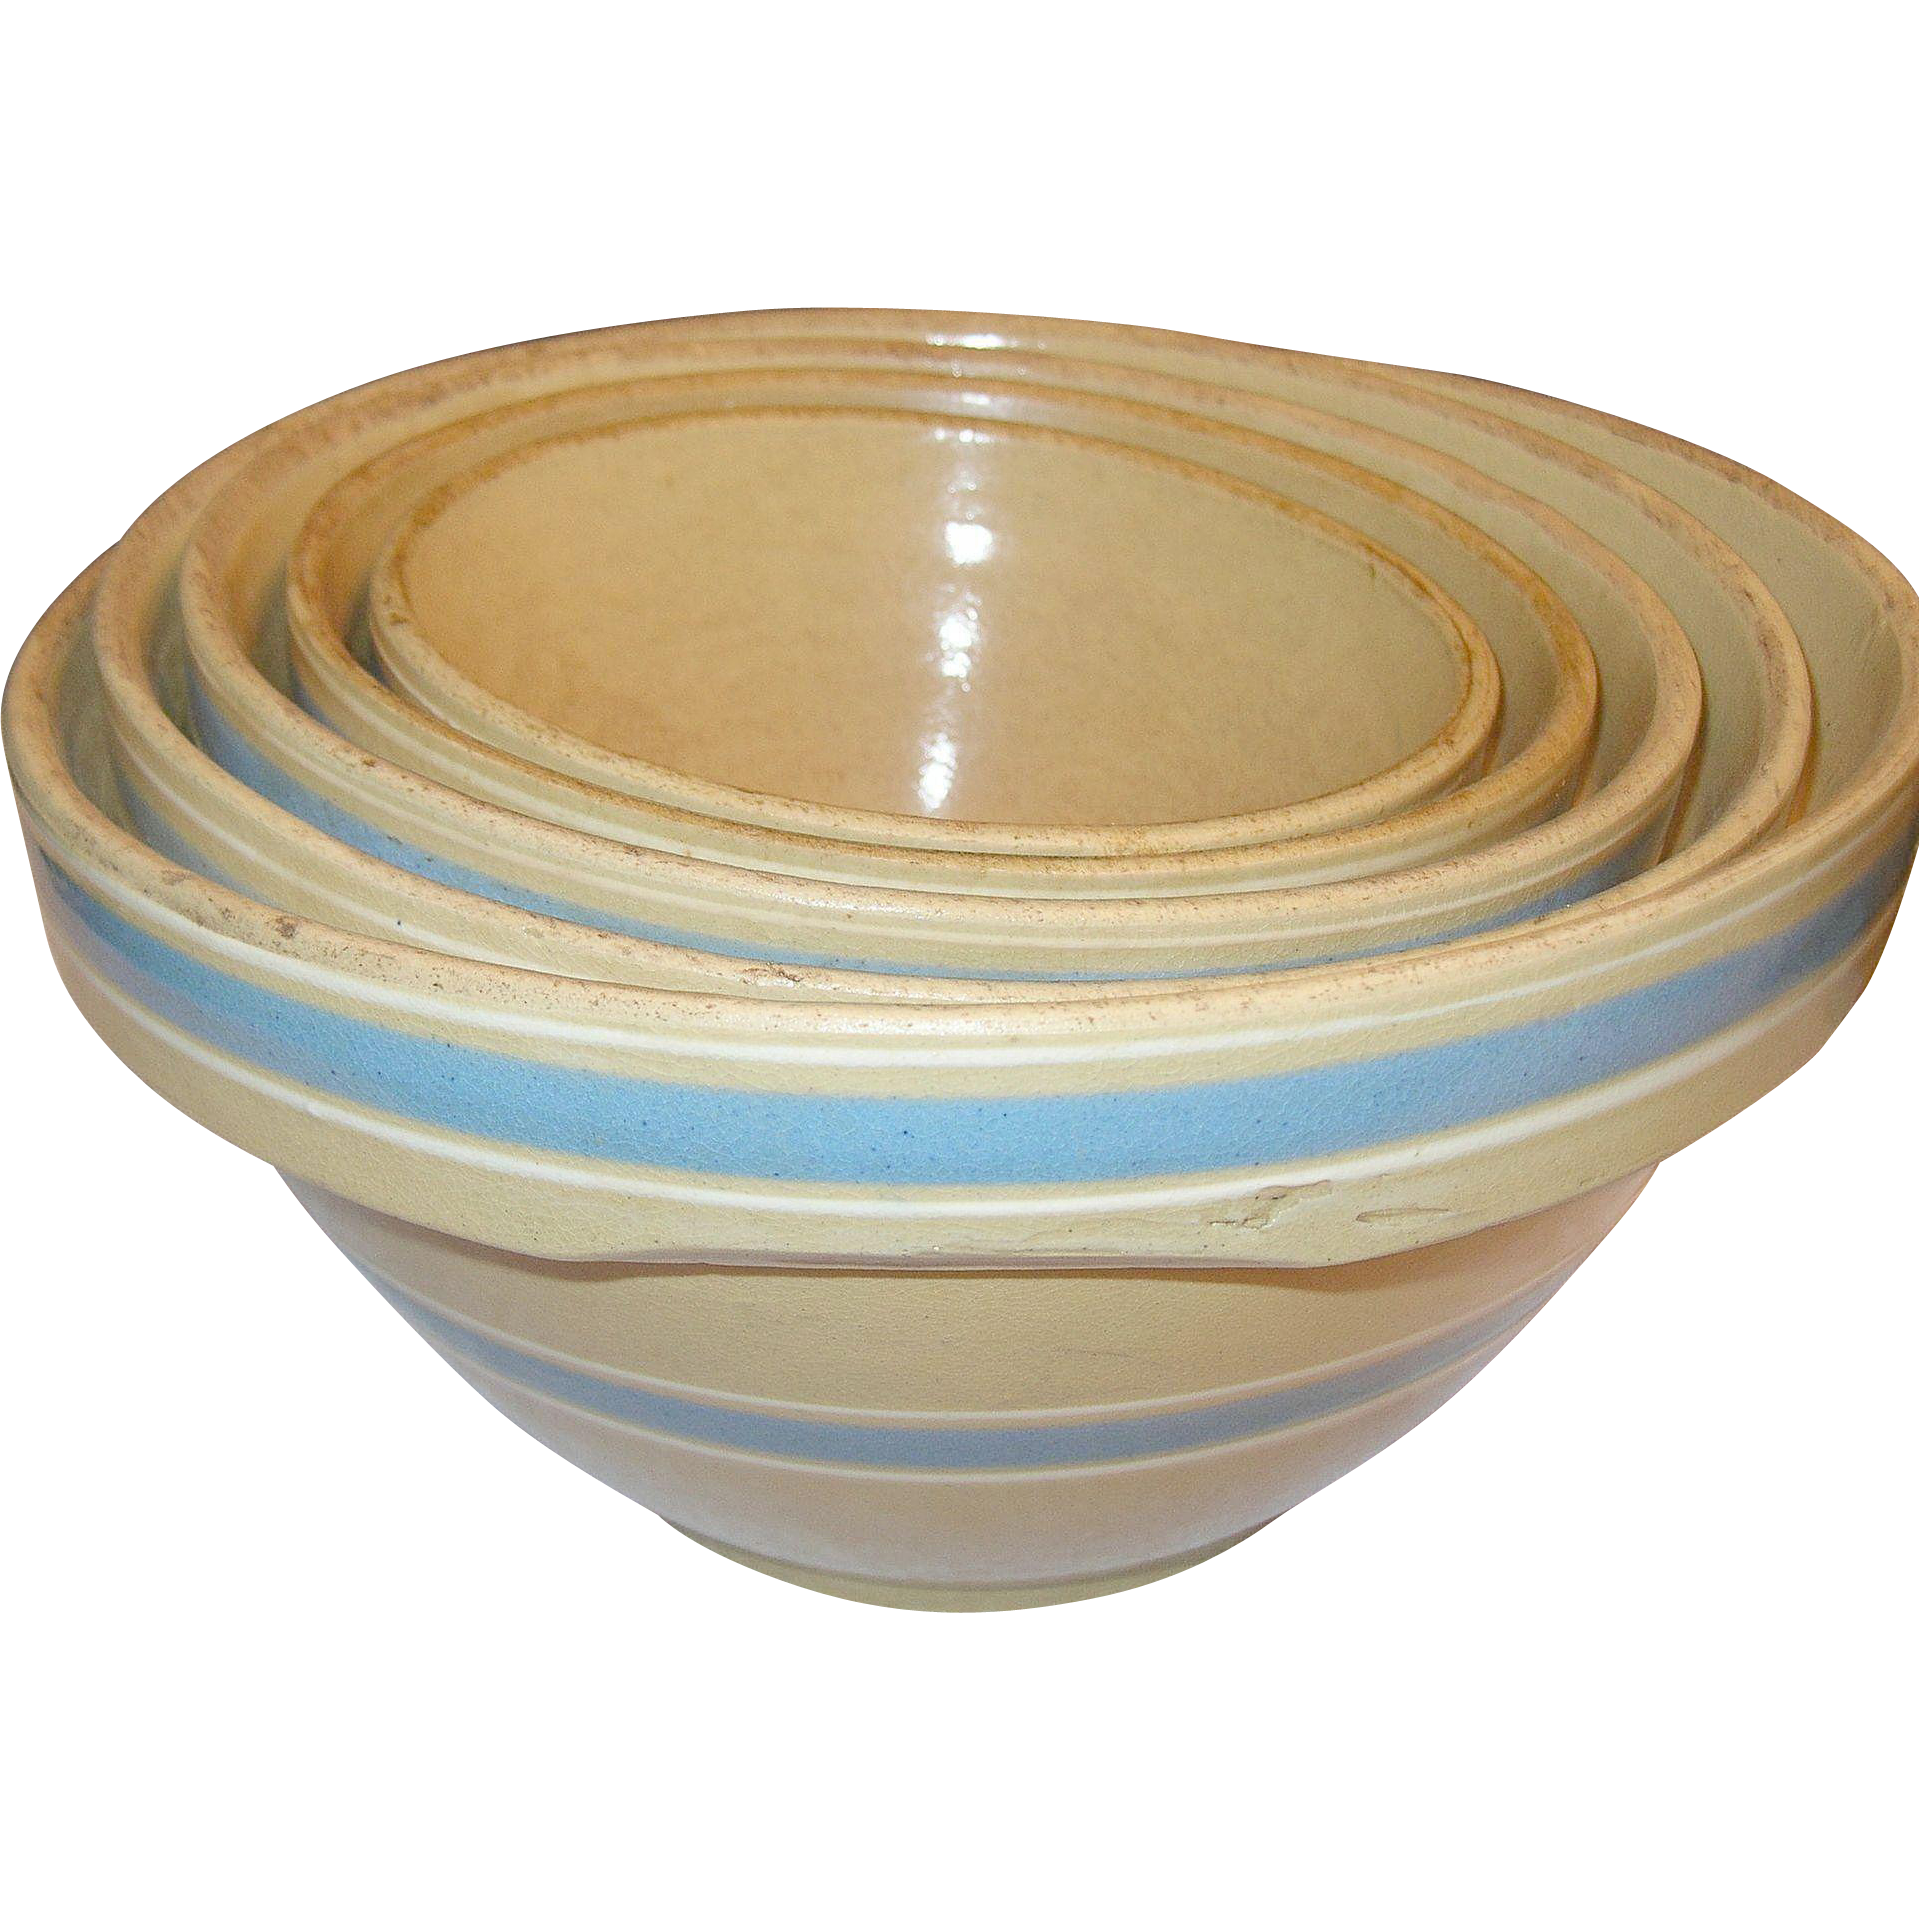 Vintage Yellow Ware Mixing Bowls Set of 5 Blue / White ...